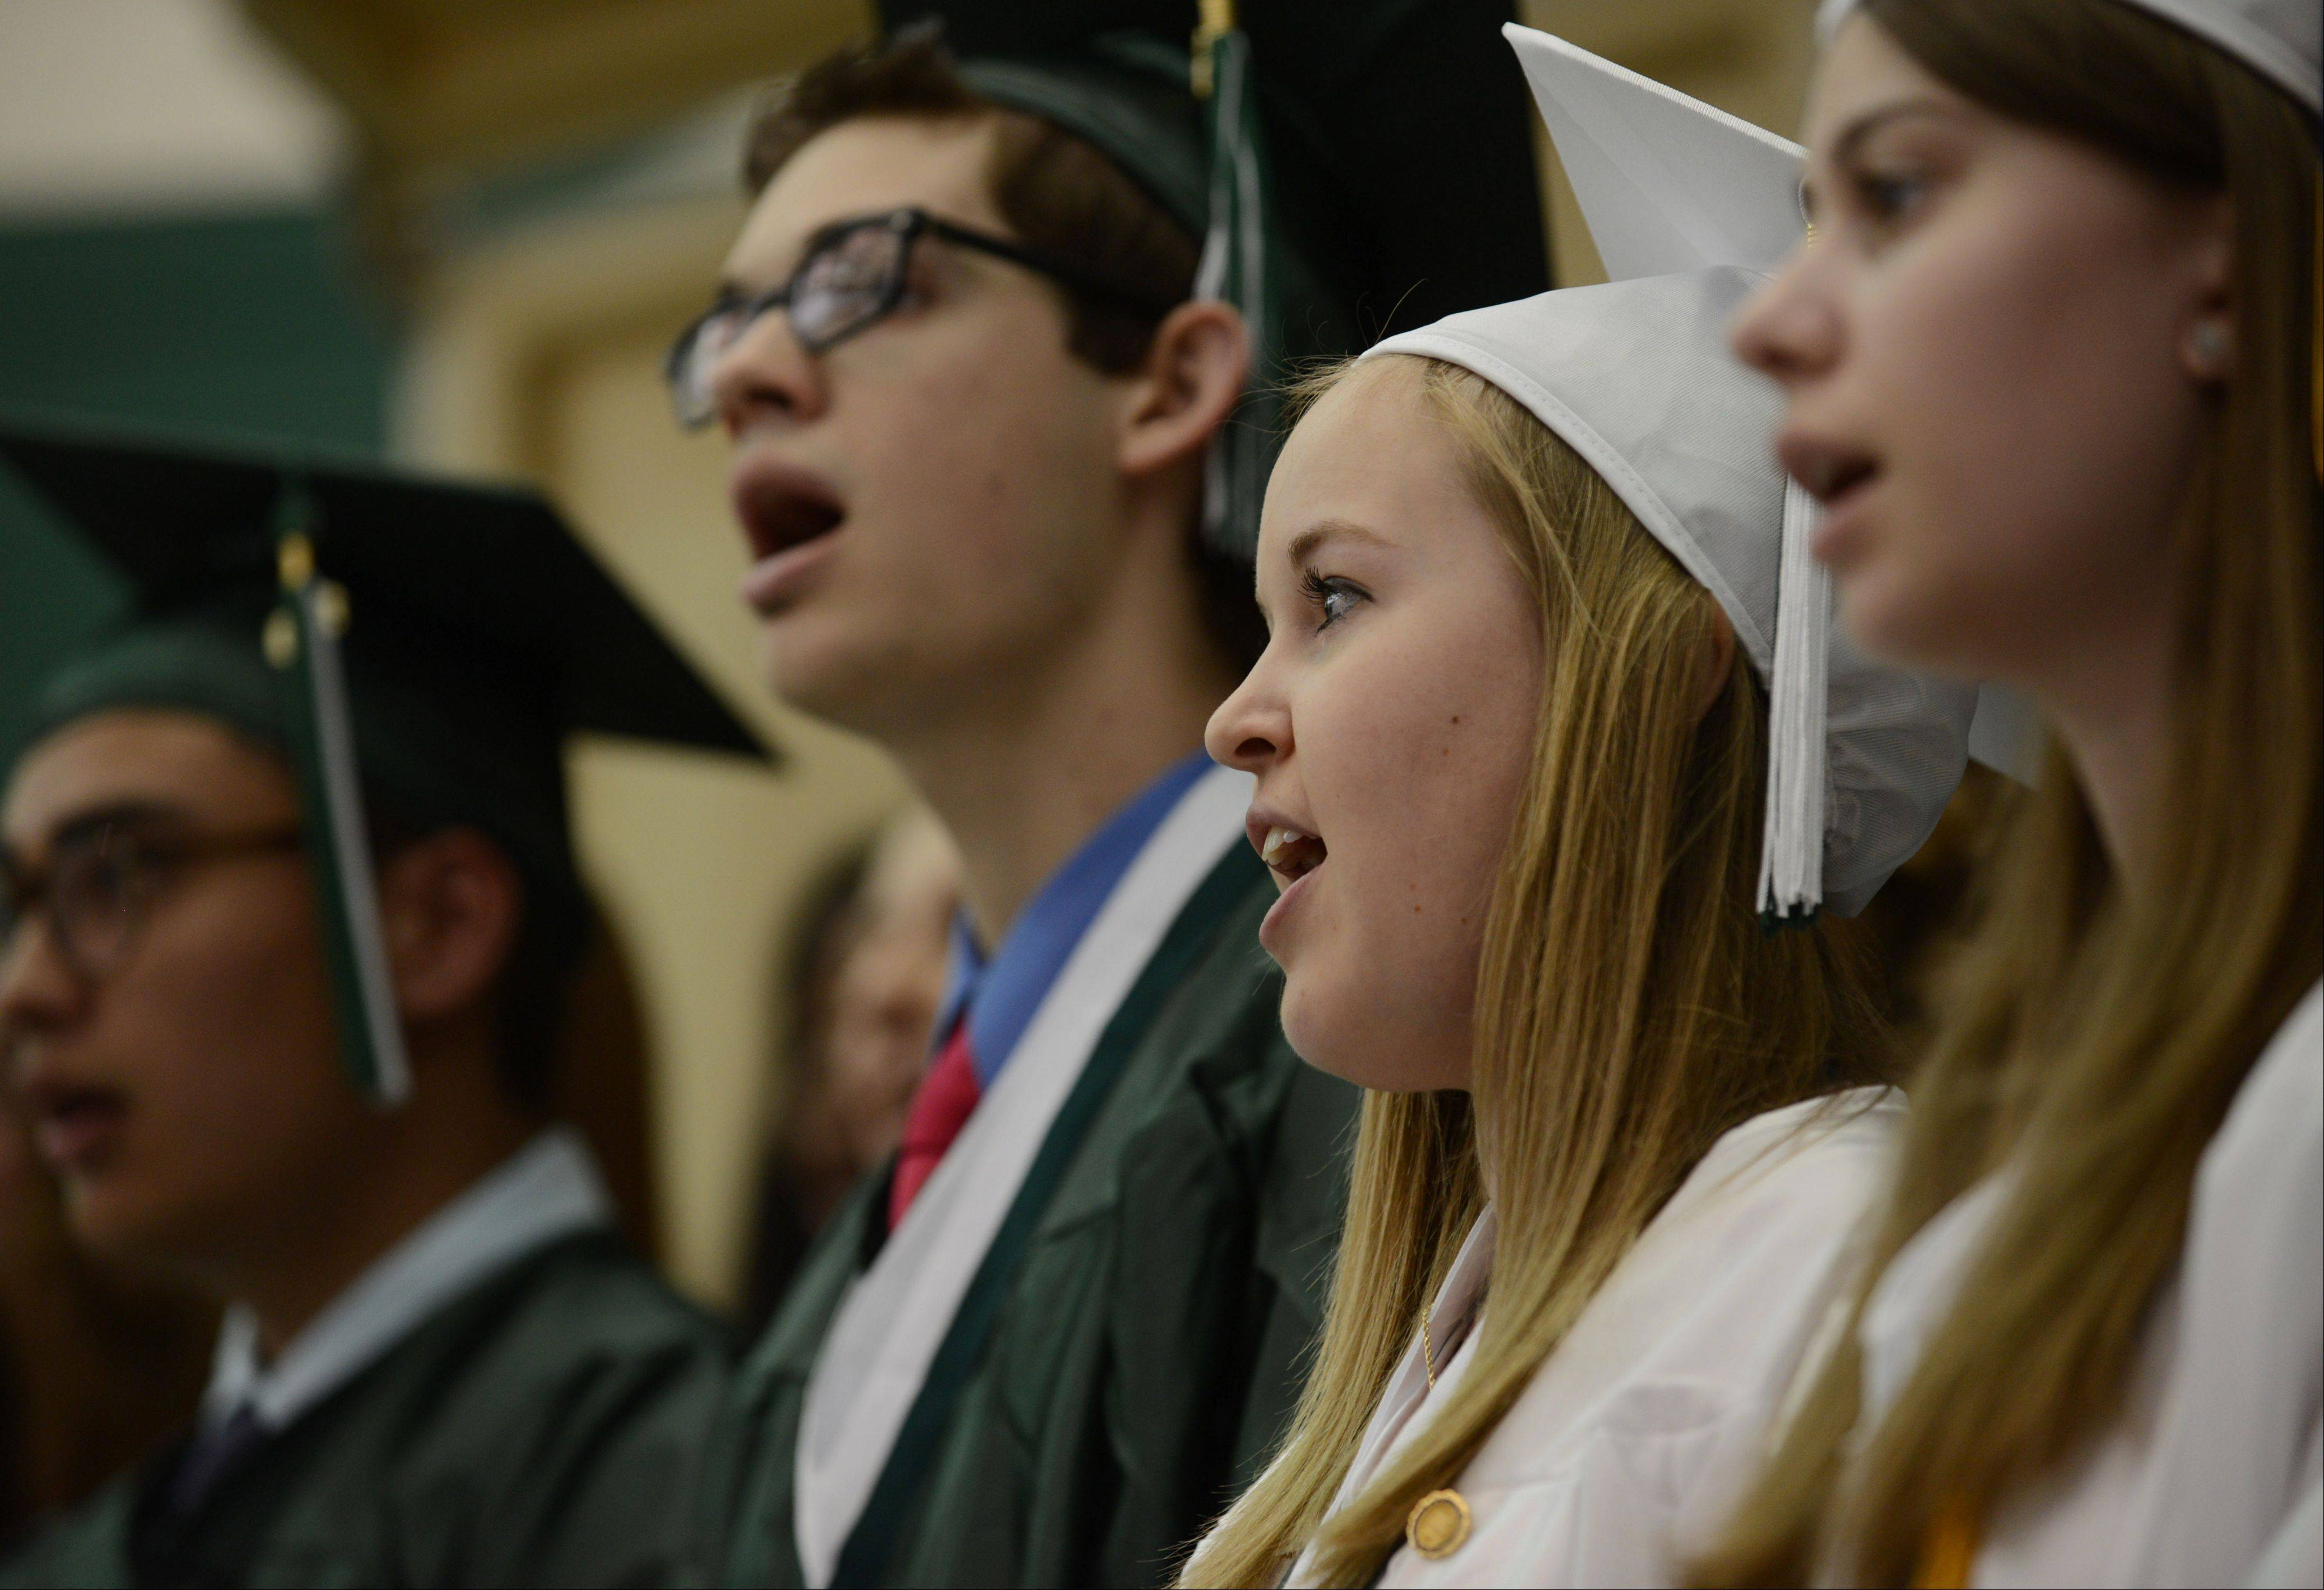 Grayslake Central High School seniors sing in the choir during Sunday's graduation ceremony in Grayslake.